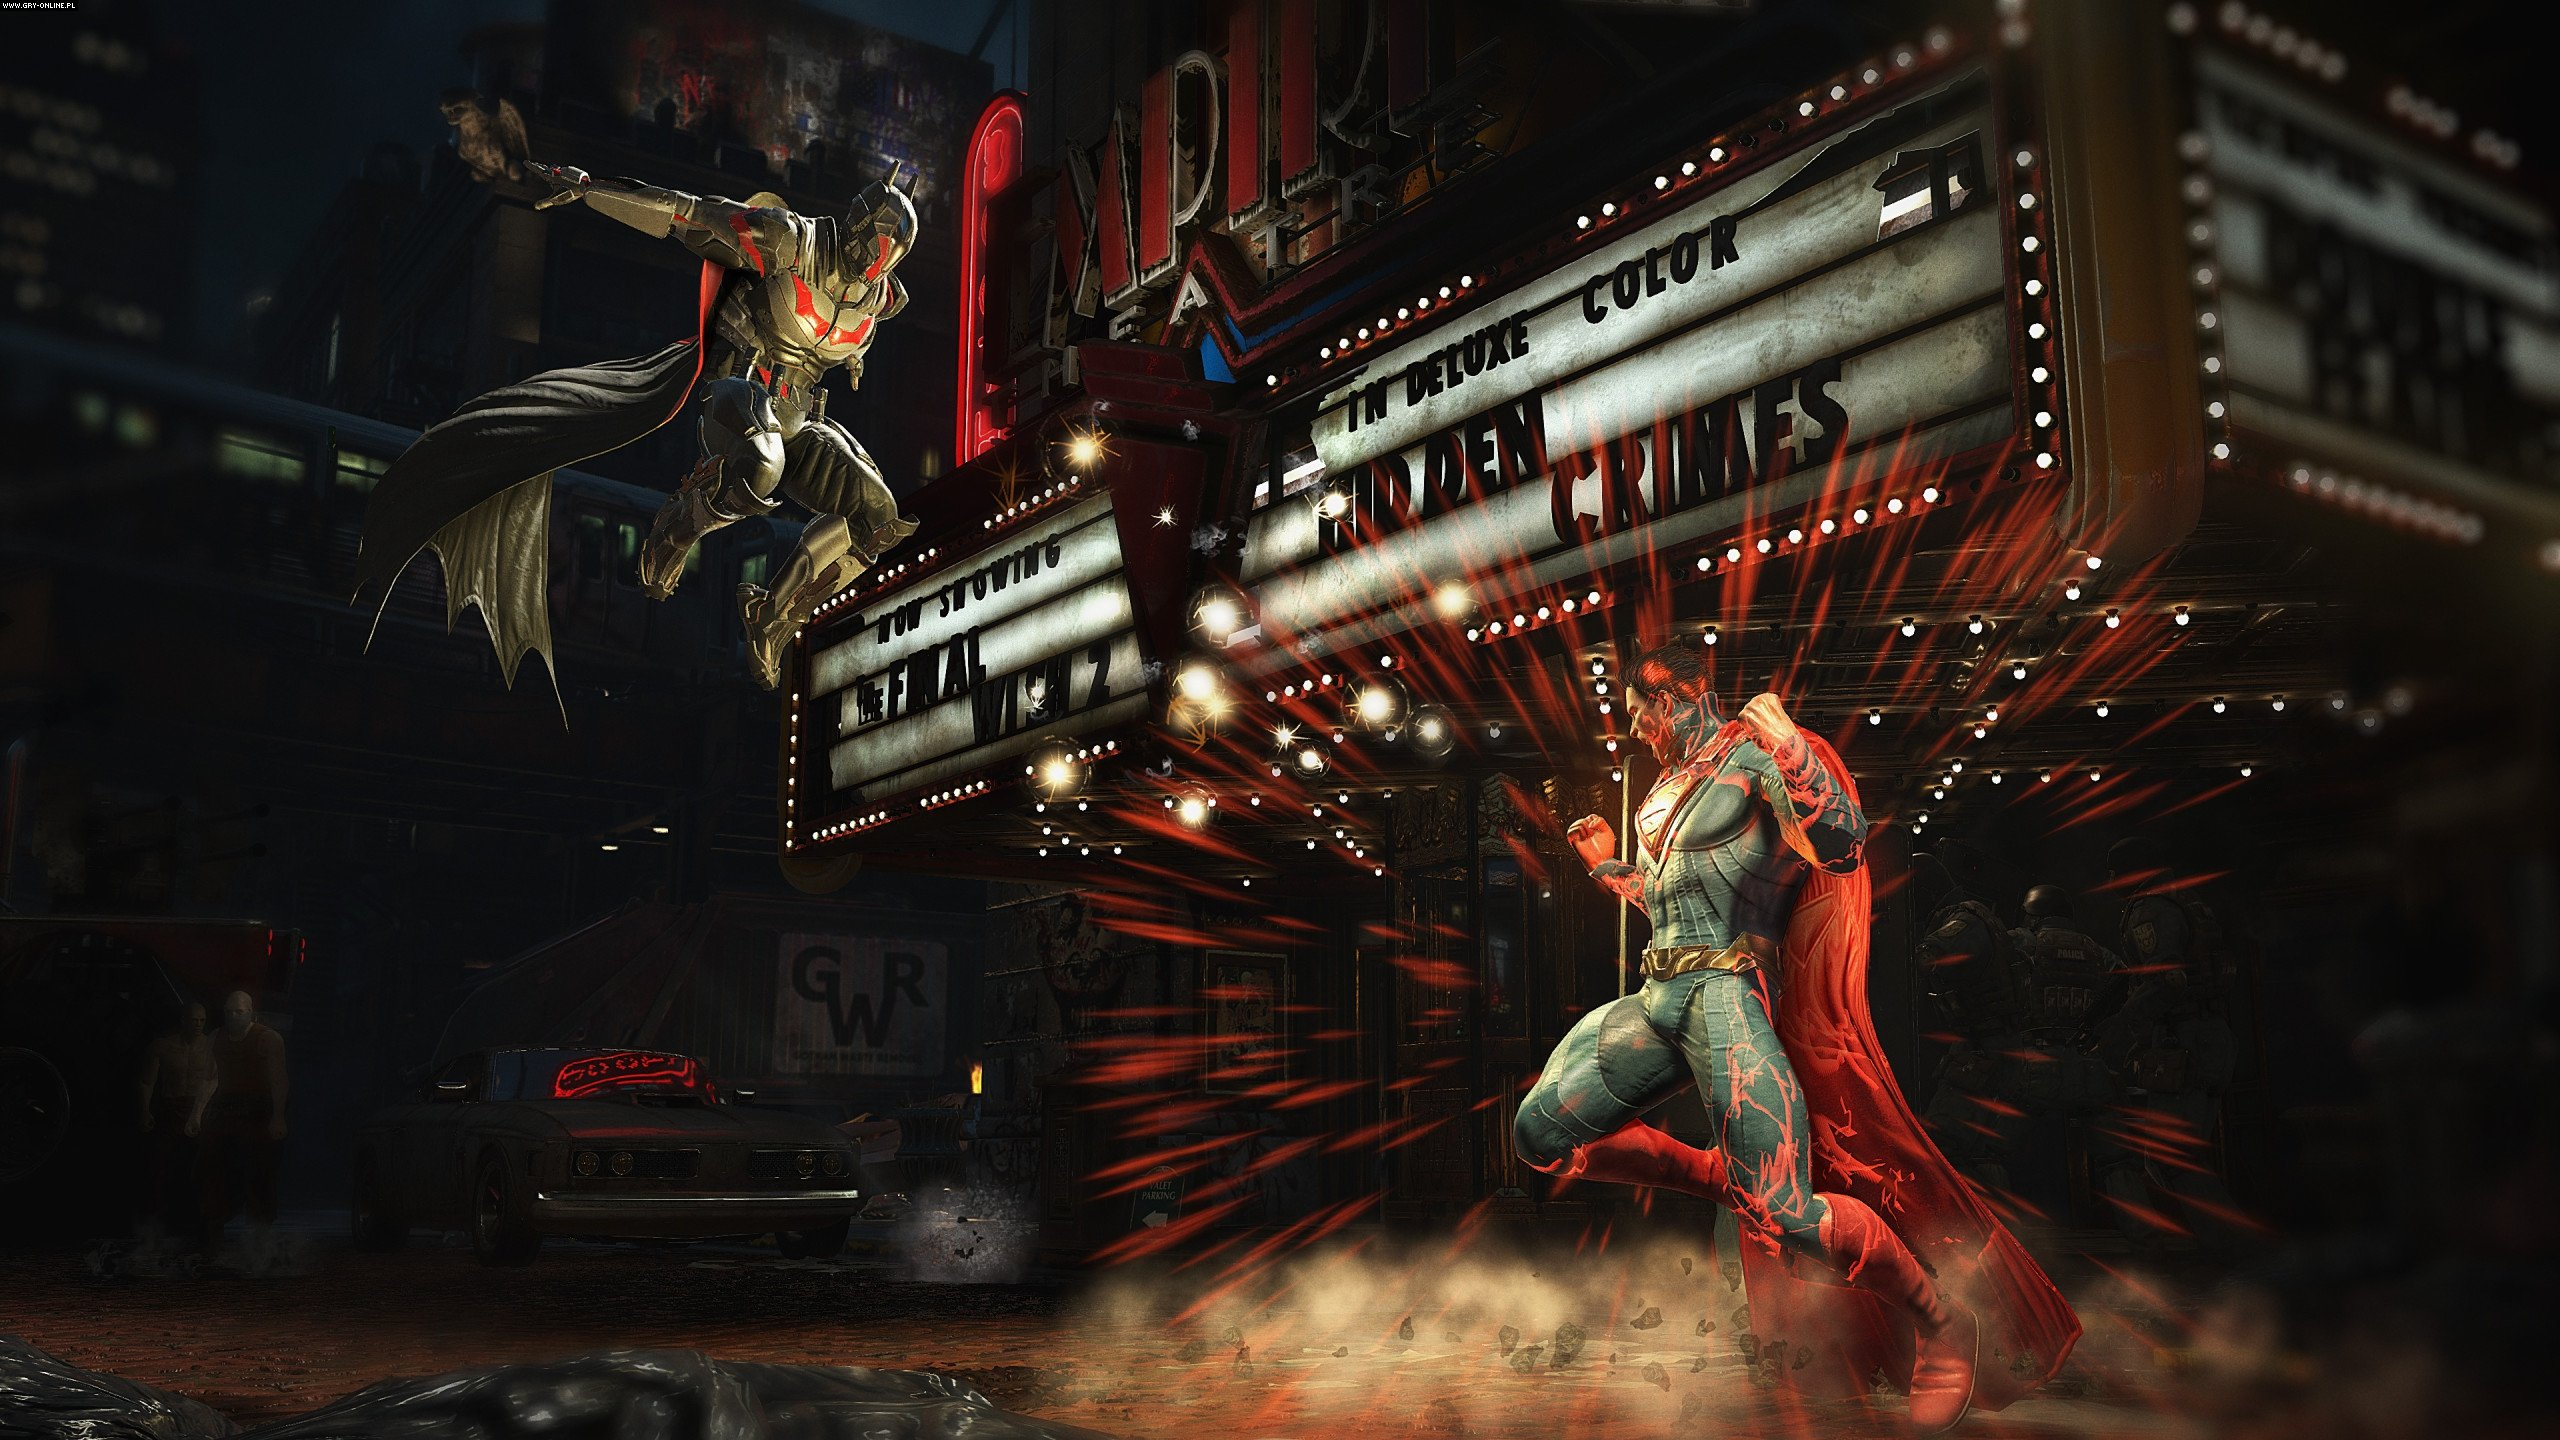 Injustice 2 PC, PS4, XONE Games Image 22/24, NetherRealm Studios , Warner Bros. Interactive Entertainment